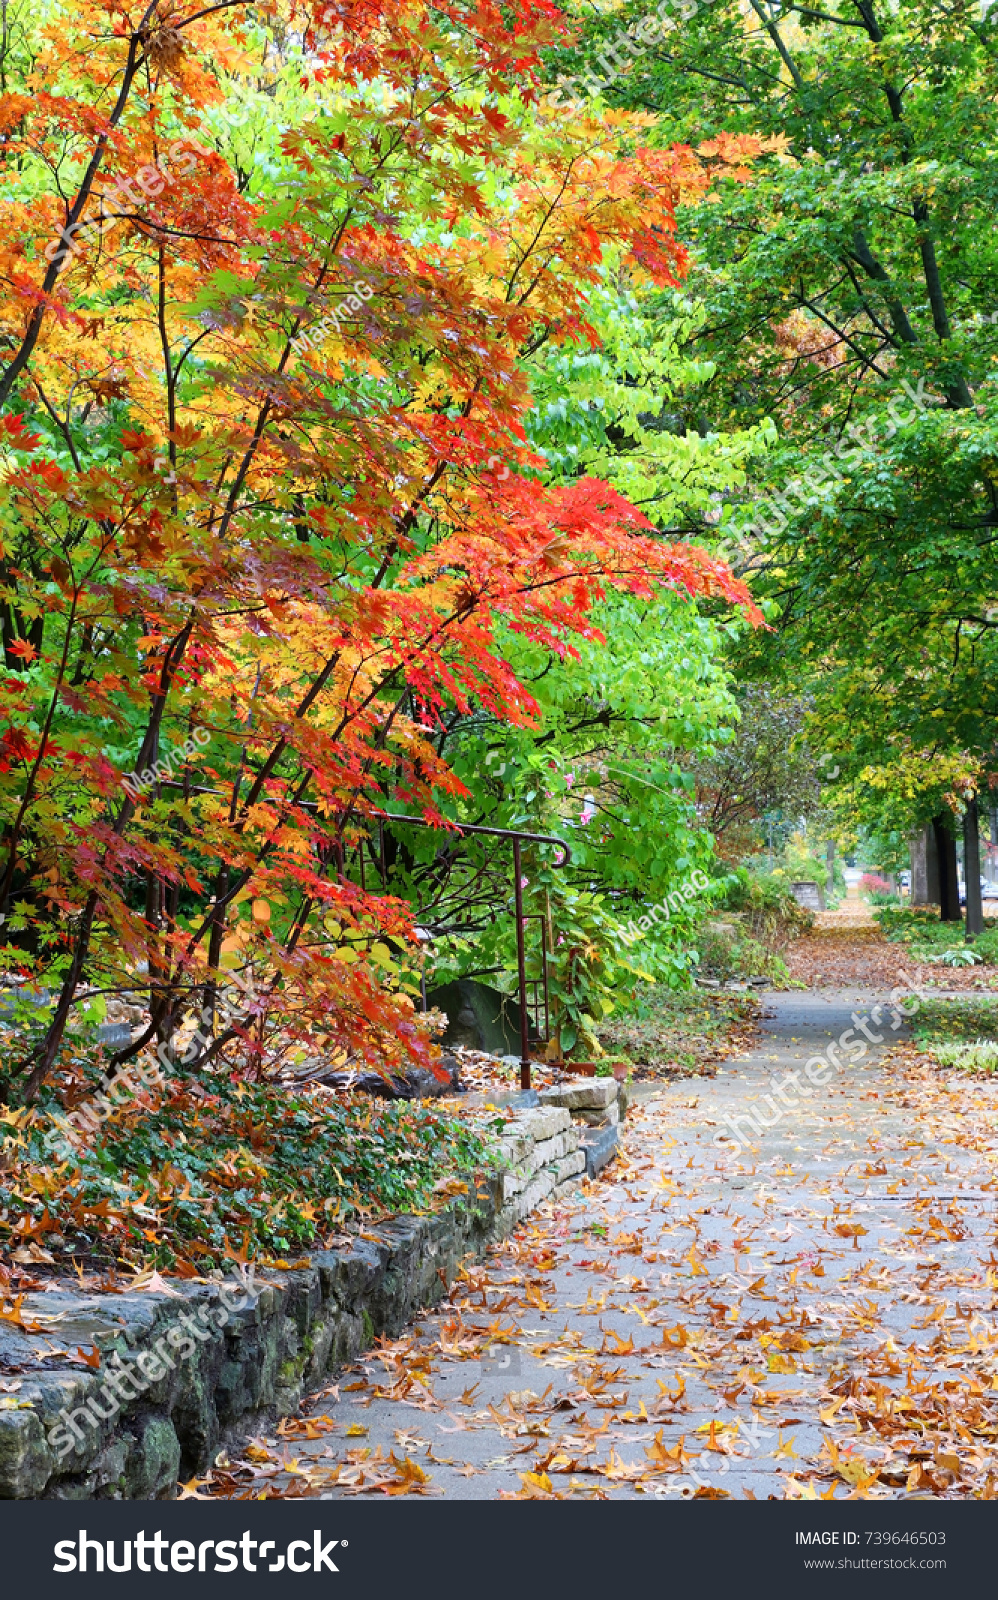 Amazing Fall Landscape Street View Small Stock Photo (Royalty Free ...